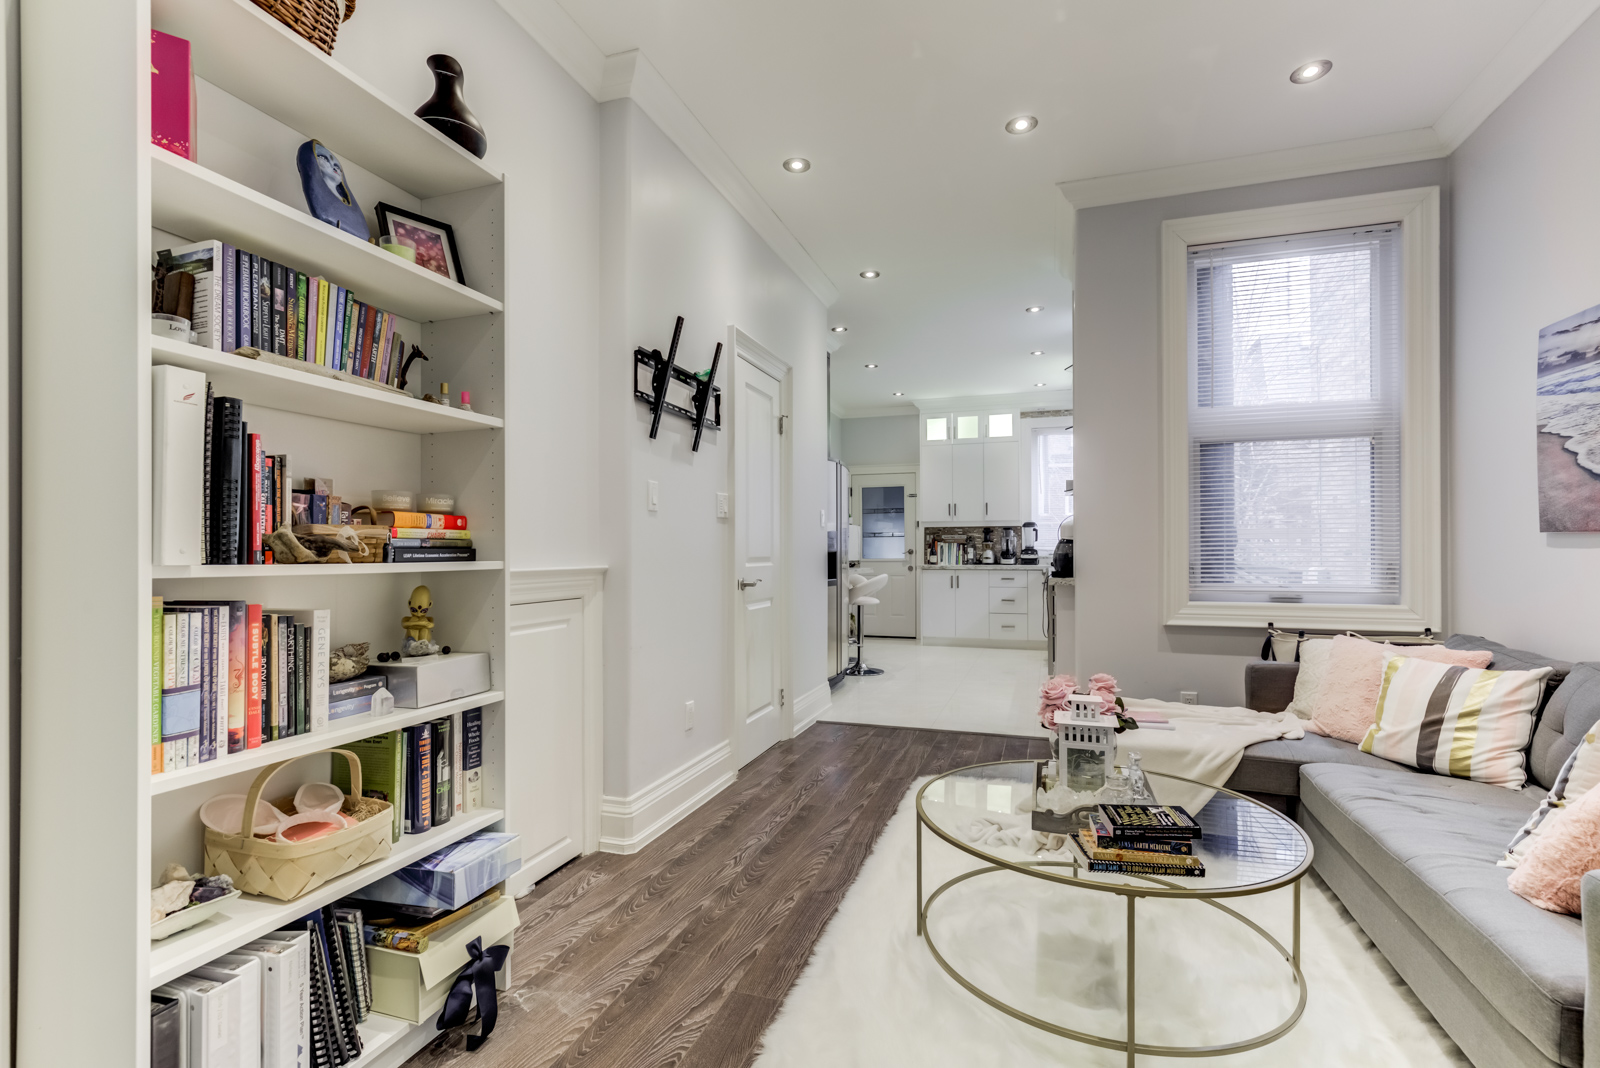 Living room with bookshelf showing upsizing to a house.